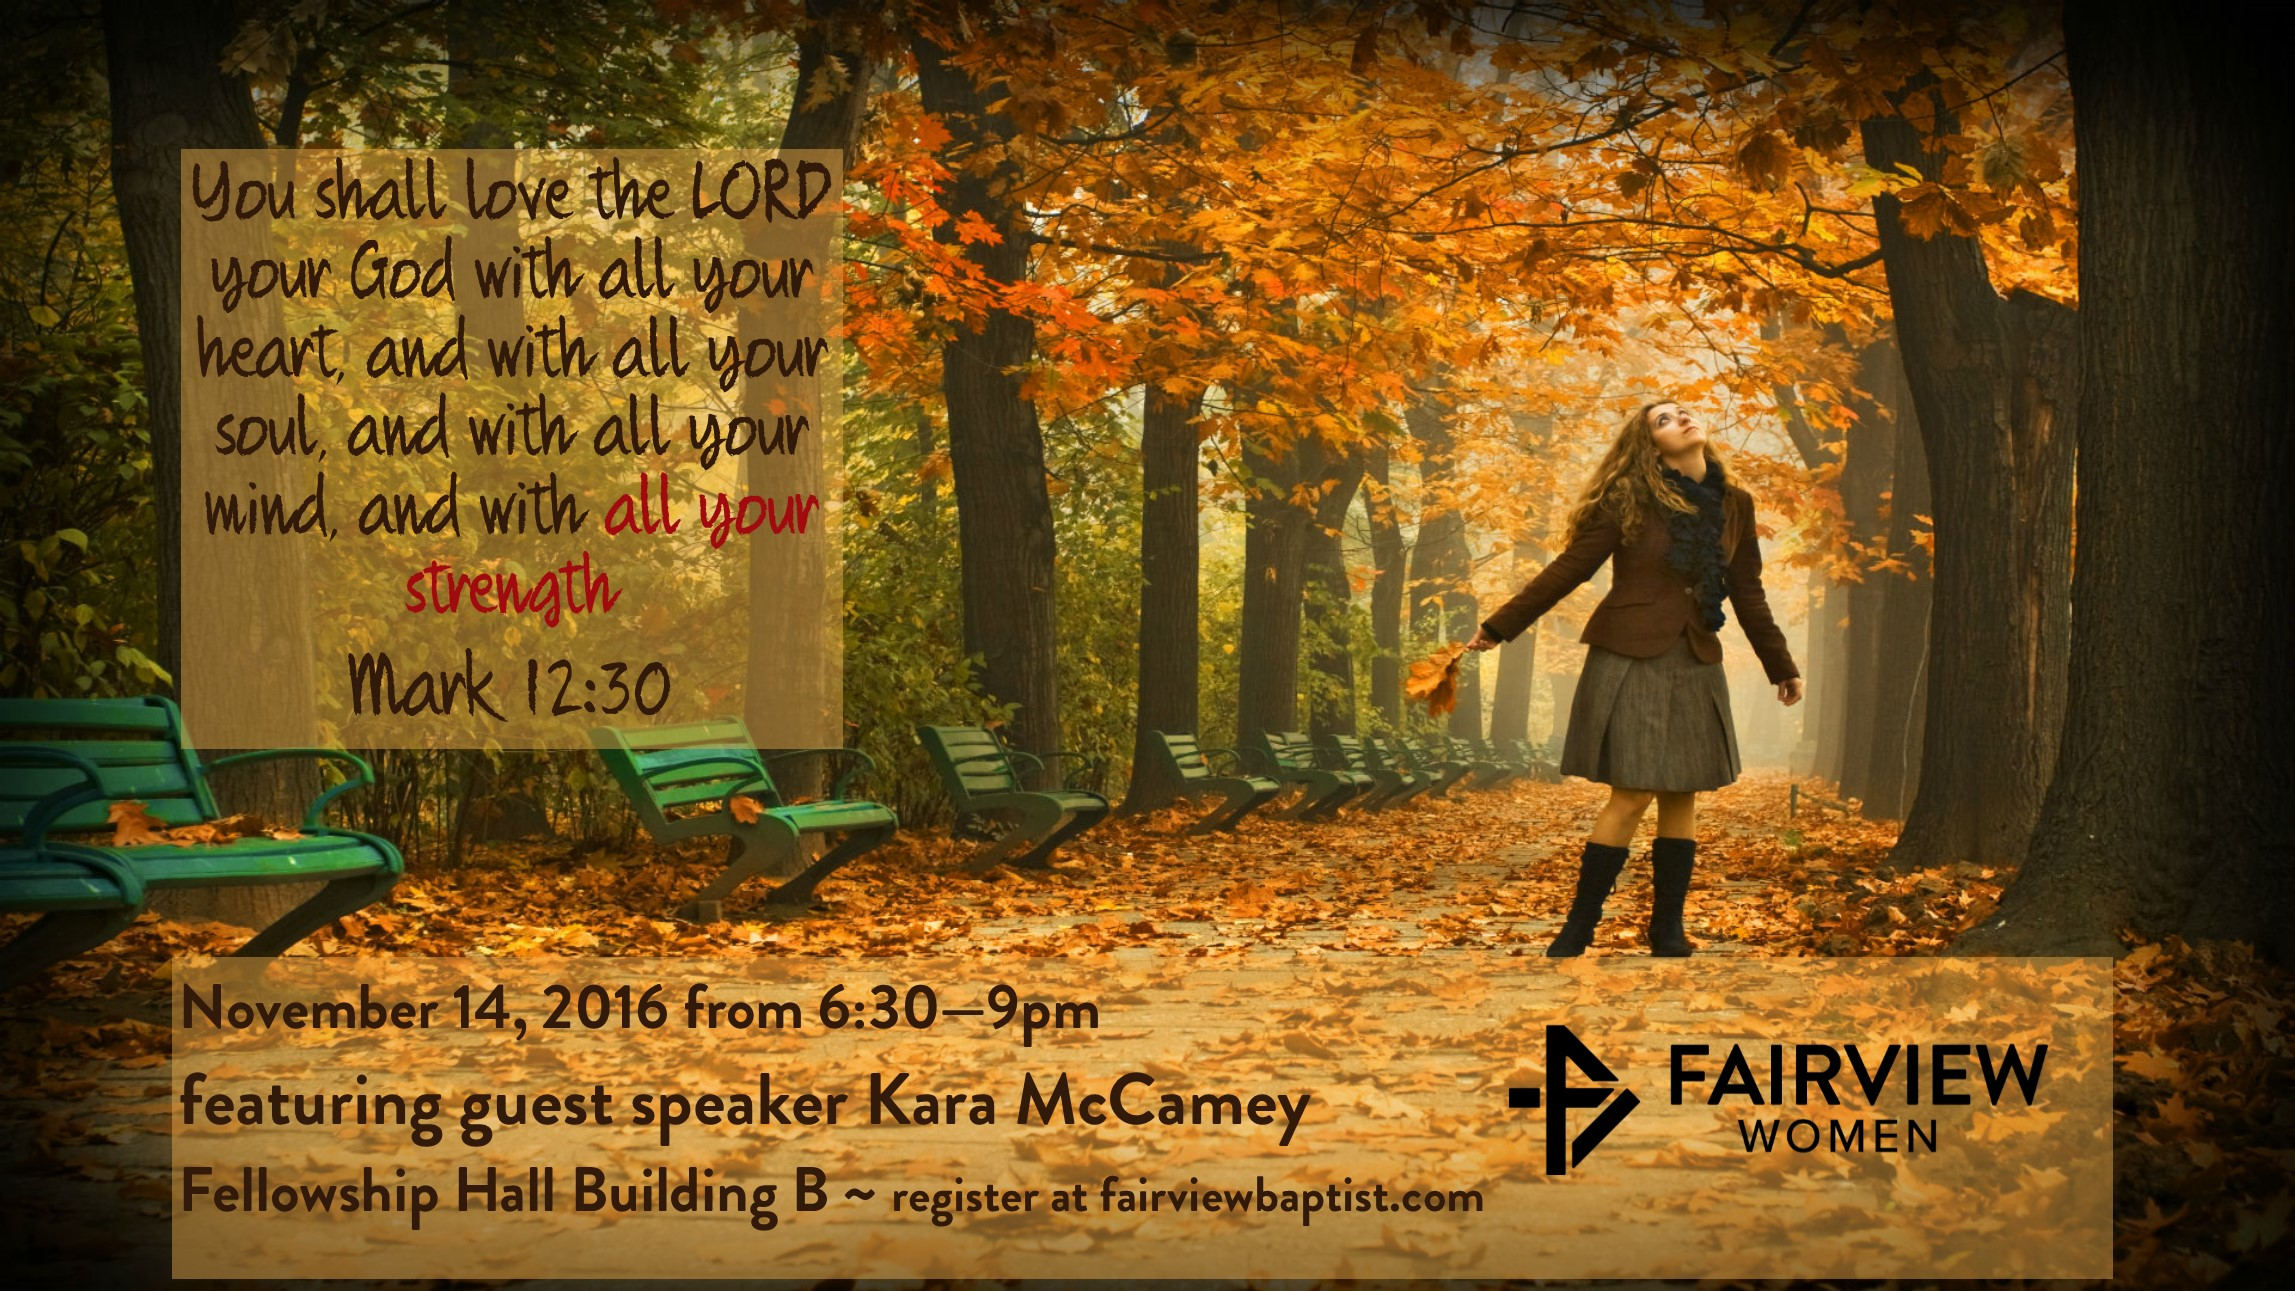 Womens ministry november event